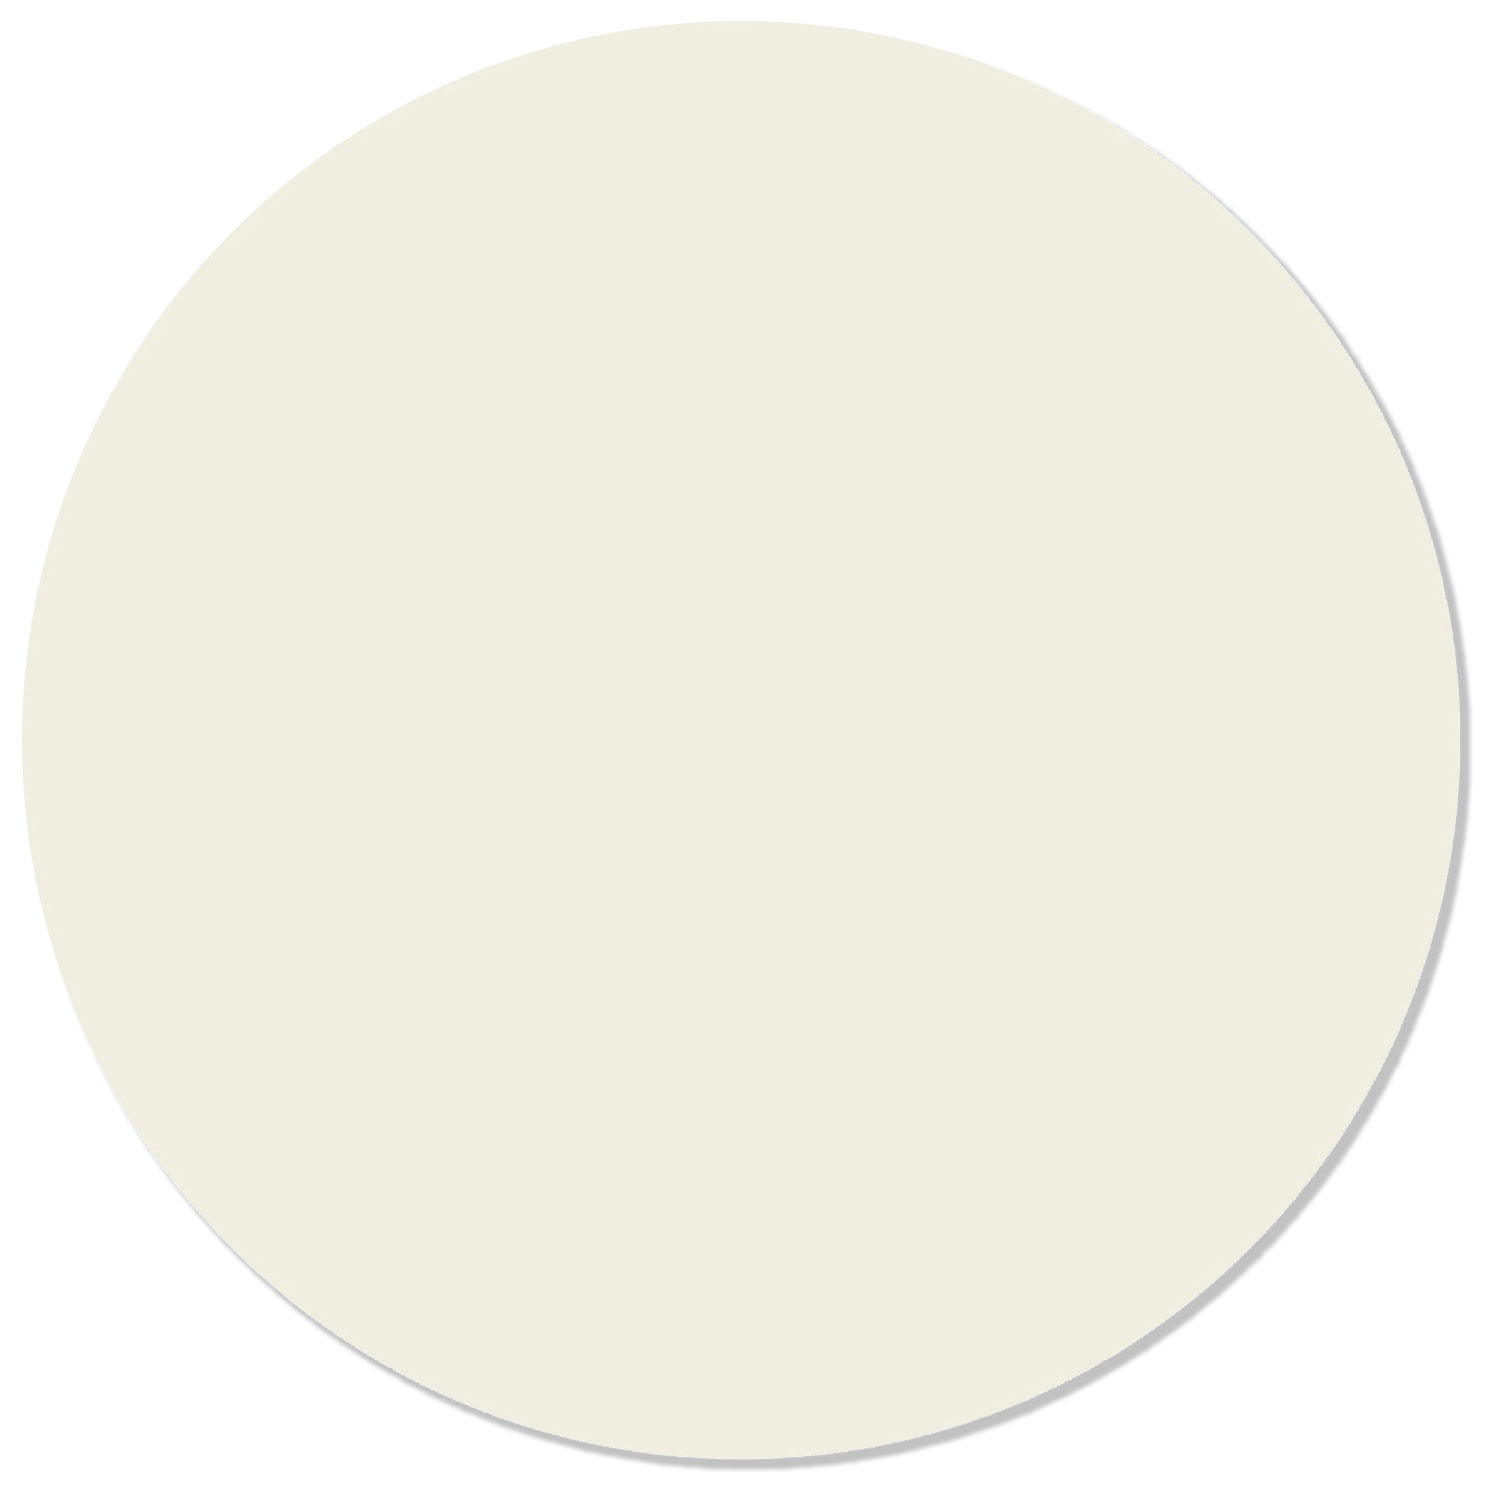 Living Room: Strong White by Farrow & Ball